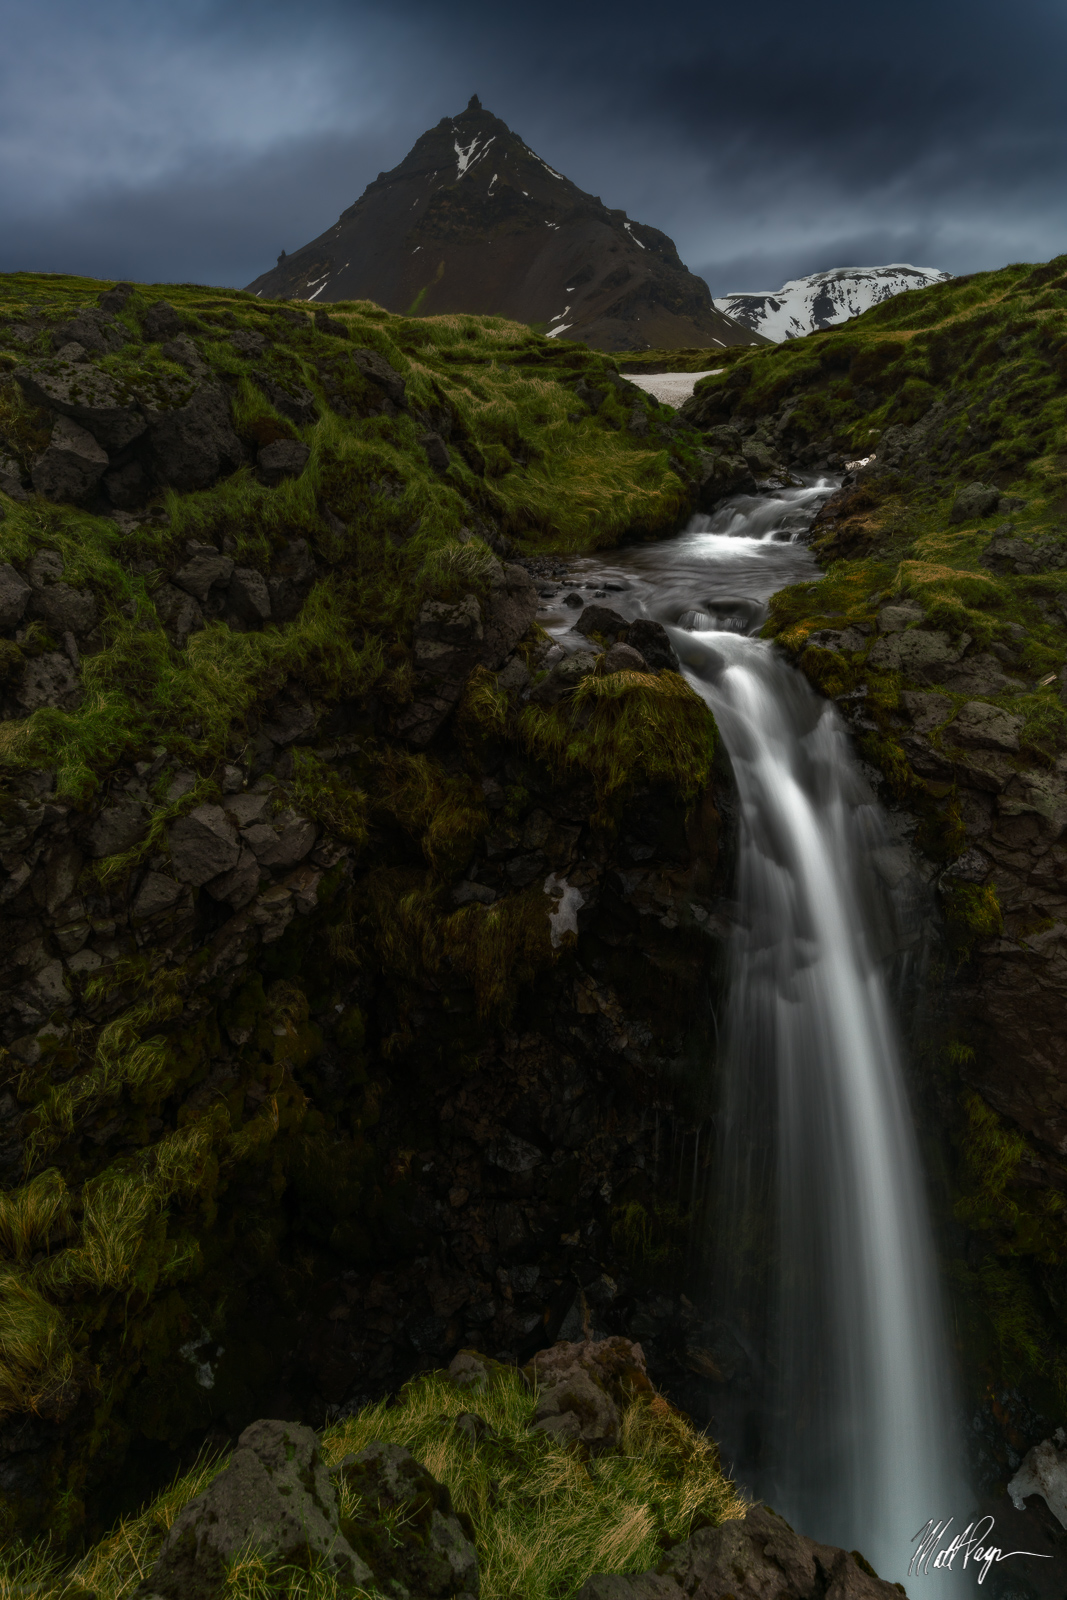 Green, Iceland, Landscape, Long Exposure, Moody, Mountains, Snaefellsnes Peninsula, Spring, Water, Waterfall, beautiful, zen, photo